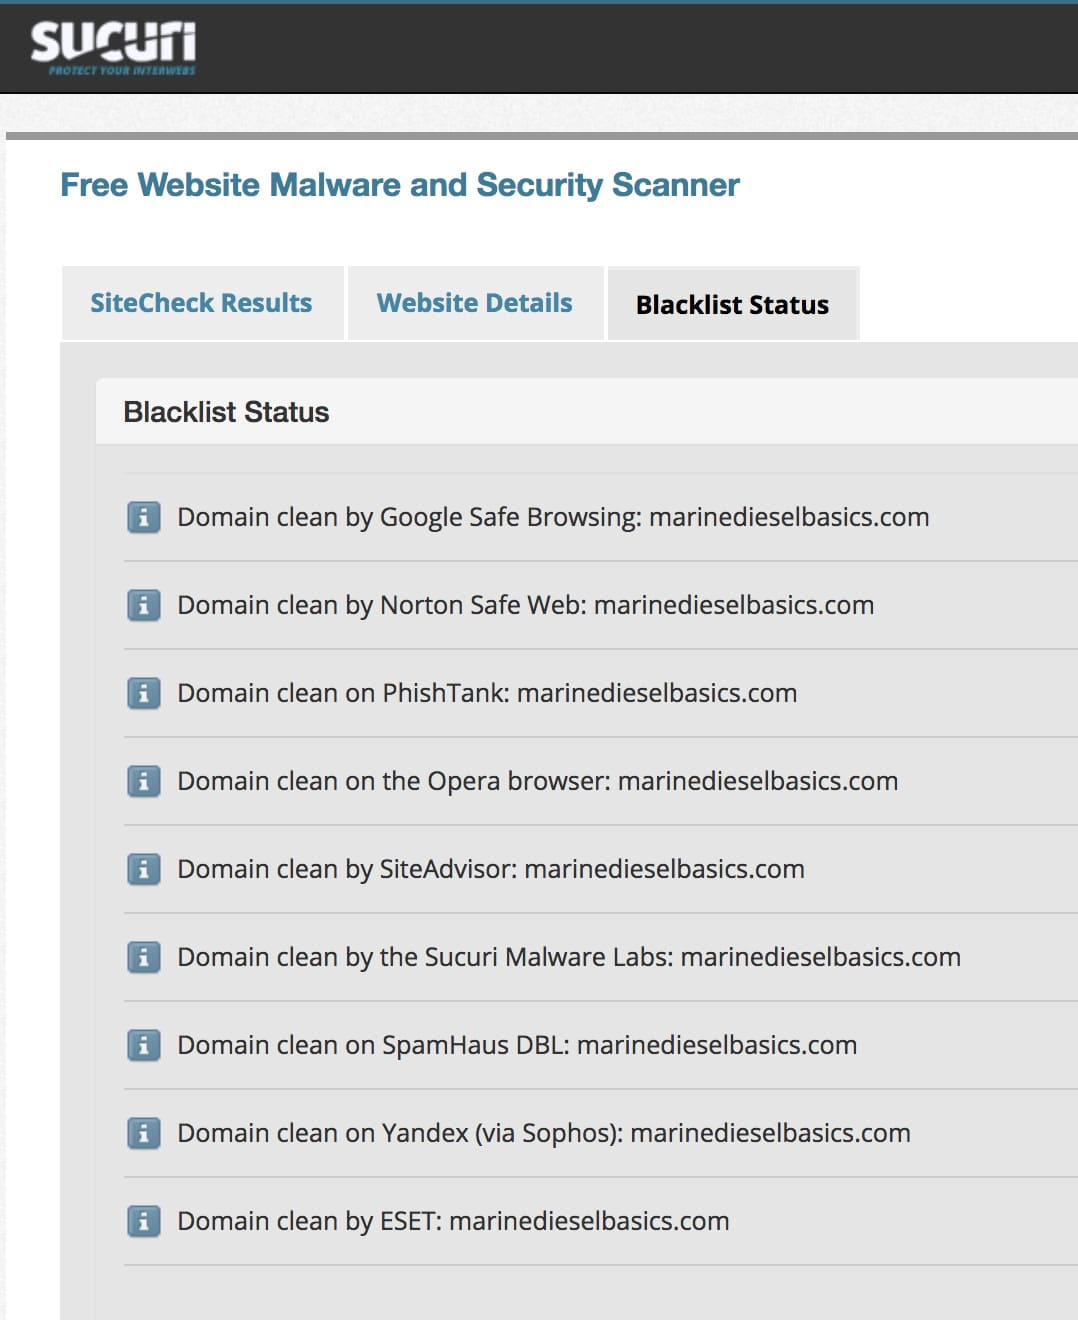 Who is scanning the security of the MDB website?